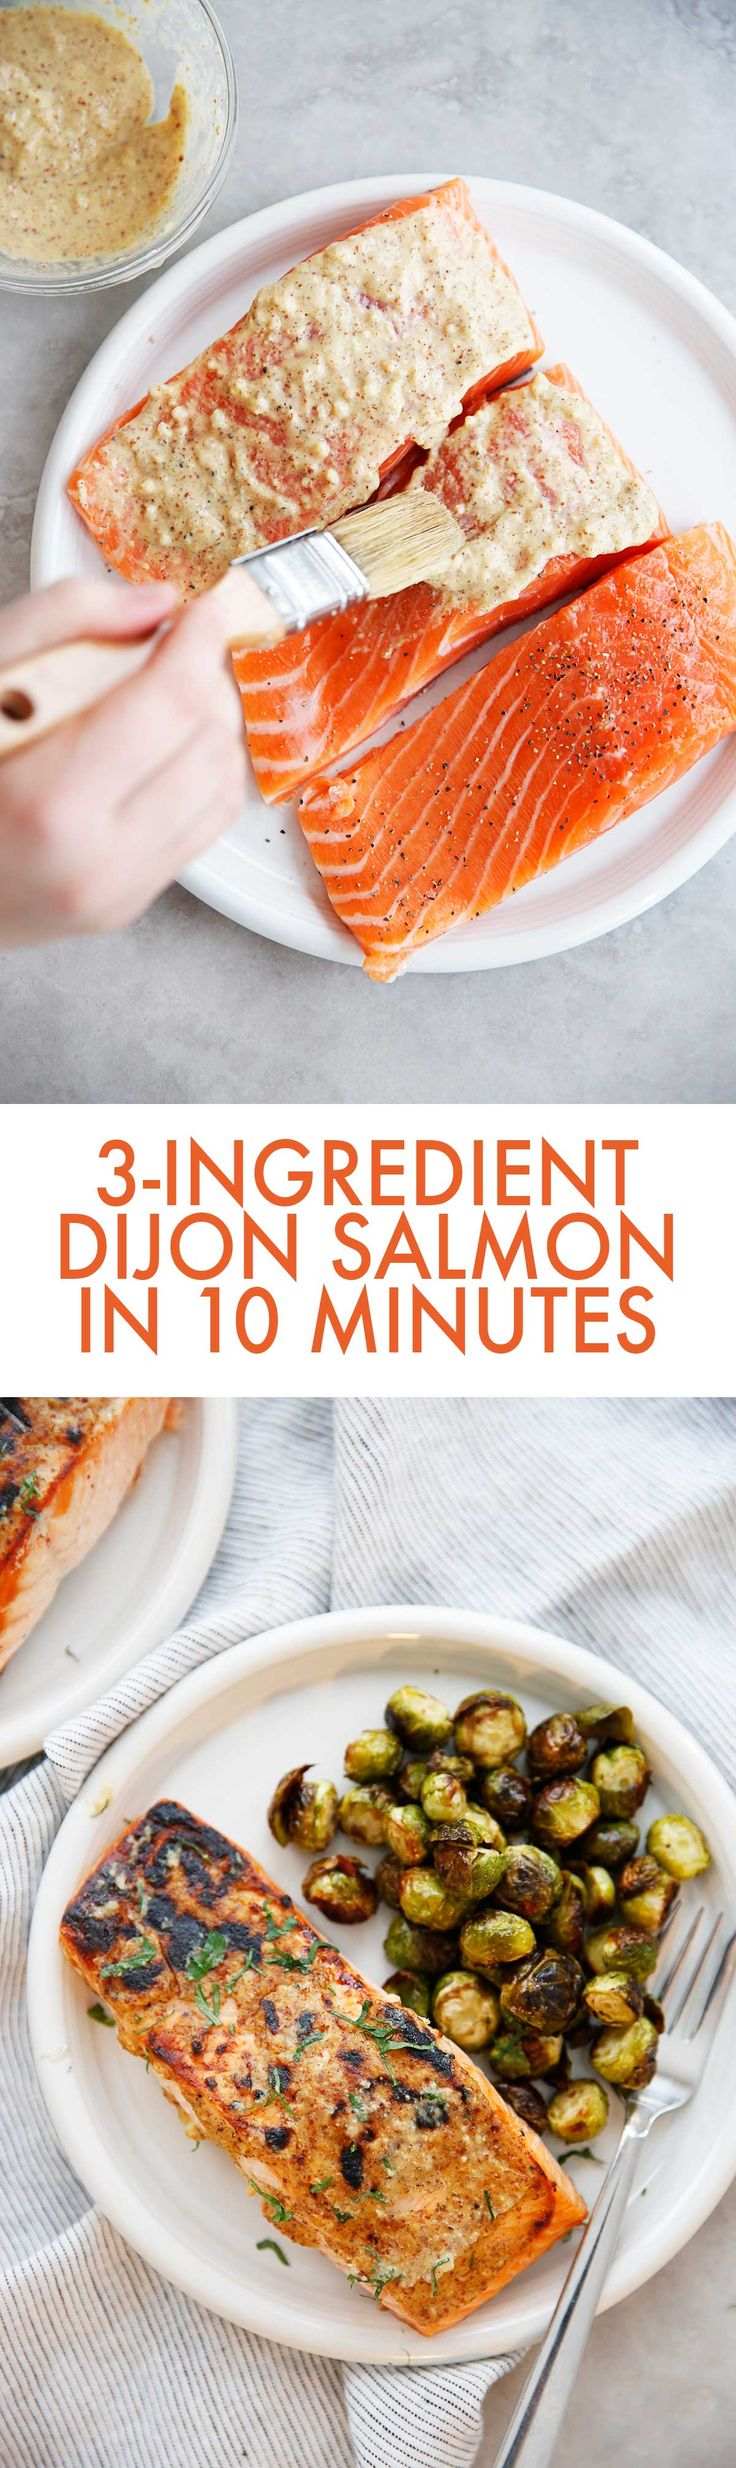 This 3-Ingredient Dijon Salmon recipe is an easy to make salmon recipe that is so delicious and and comes together in 10 minutes! It's the perfect weeknight salmon recipe that would be great for date night, too! It's Whole30, gluten-free, dairy-free, and a delicious seafood recipe!